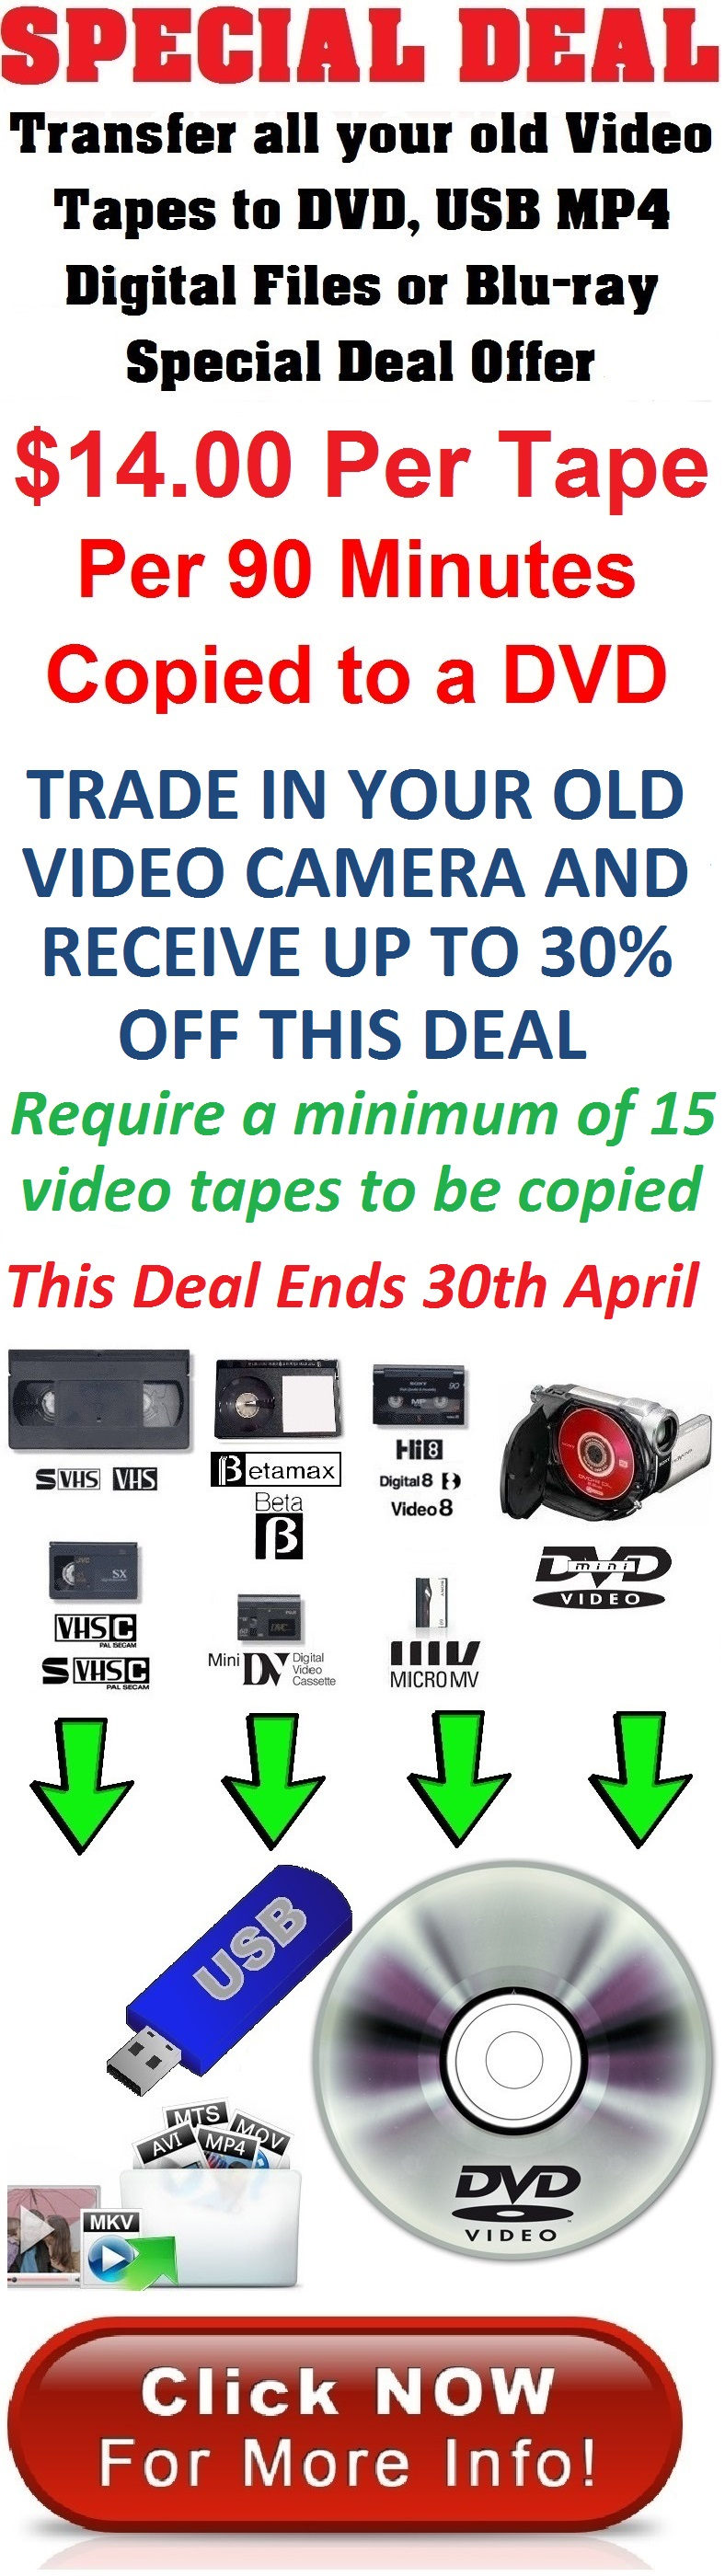 VHS to DVD $14.00 per tape PER 90 MINUTES 2019 special offer deal - transfer all your old video tapes for this amazing price